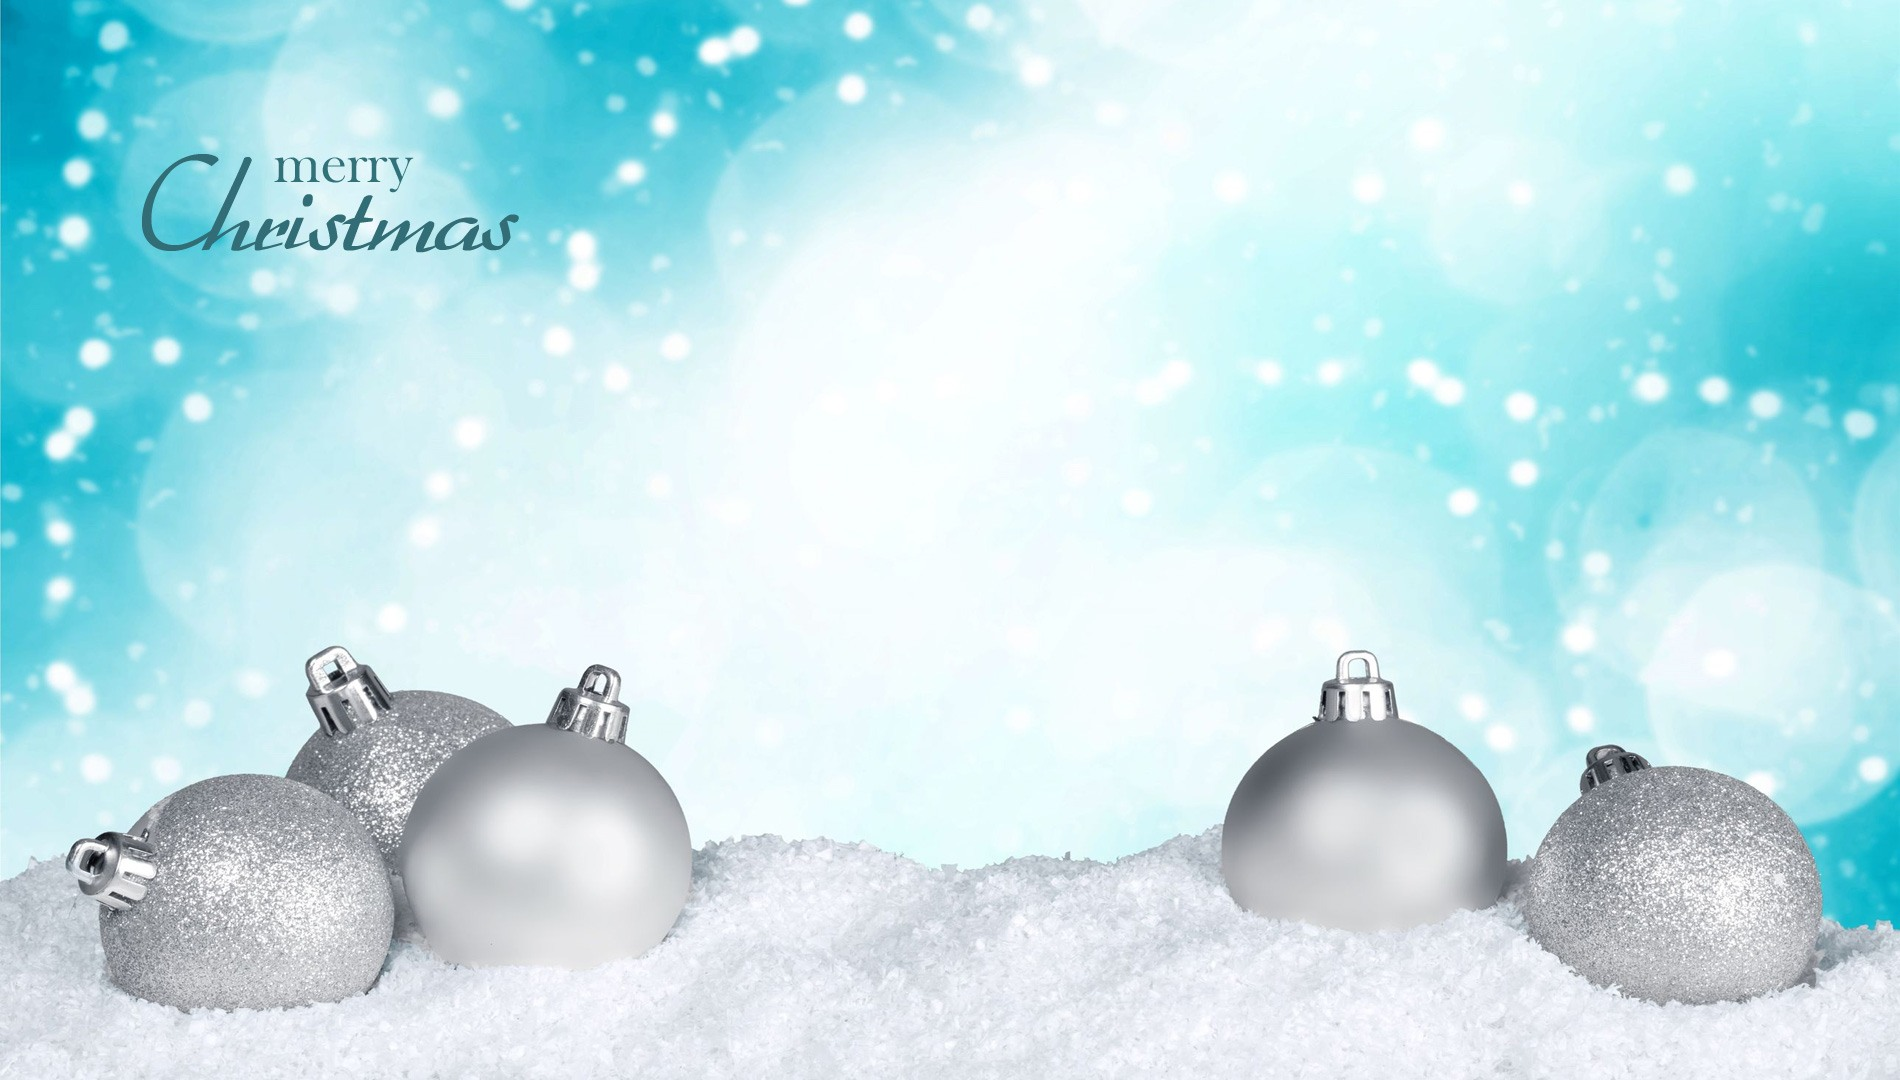 Merry Christmas background free